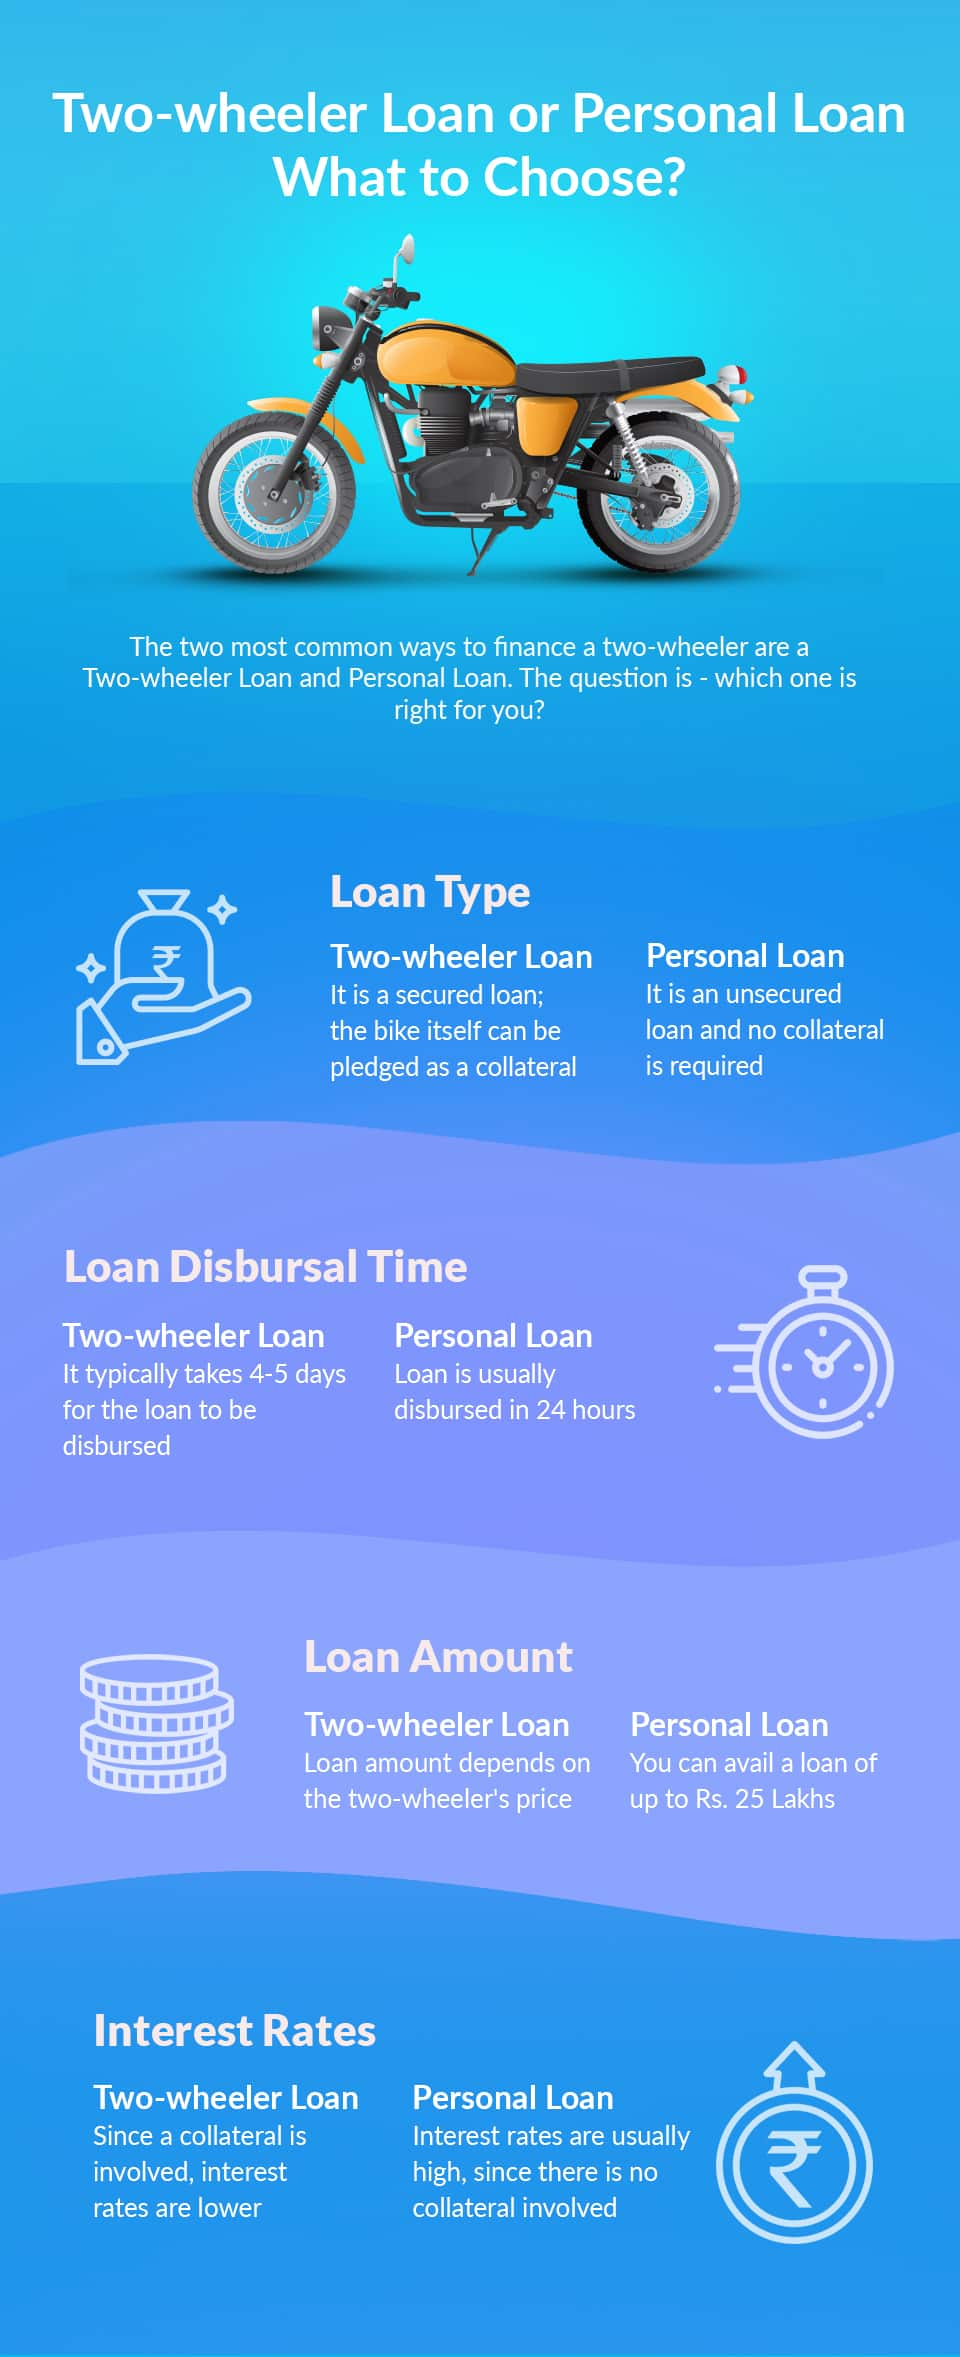 Two-Wheeler Loan vs Personal Loan